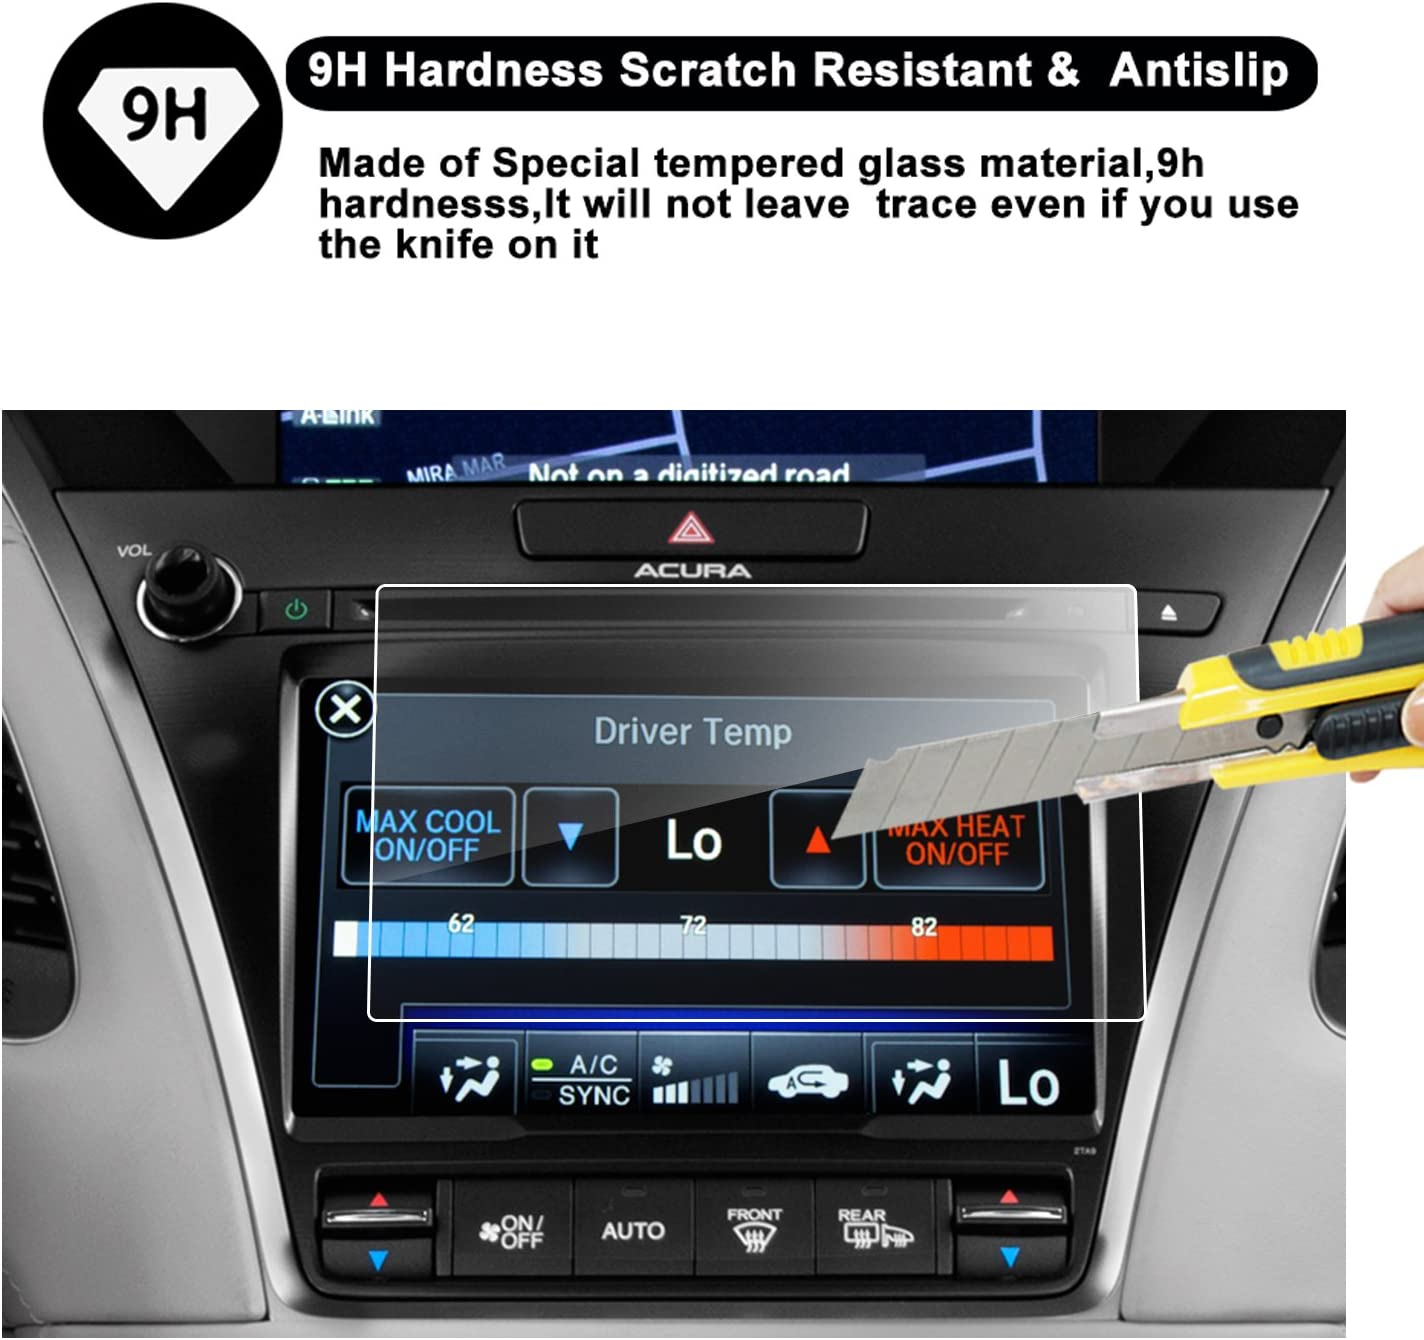 2014-2018 Acura MDX ODMD Display 7-Inch Lower Touch Screen Protector R RUIYA HD Clear TEMPERED GLASS Guard Shield Scratch-Resistant Ultra HD Extreme Clarity MDX-7